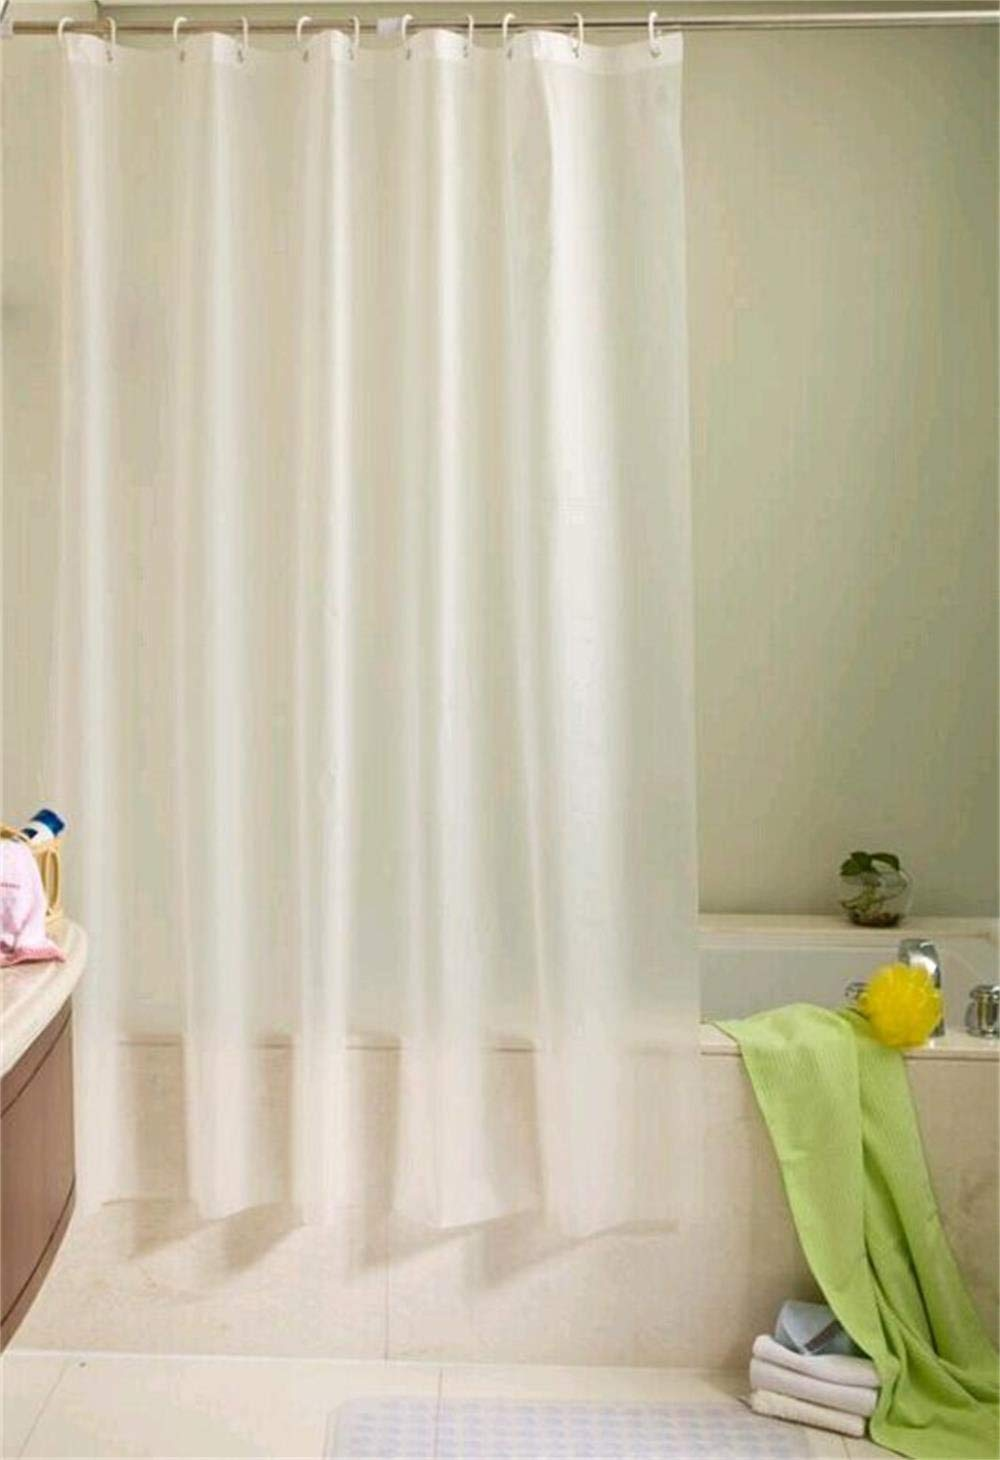 ufelicity 48 inch by 72 inch home decor pvc free vinyl shower curtain liner water resistant and mildew proof w